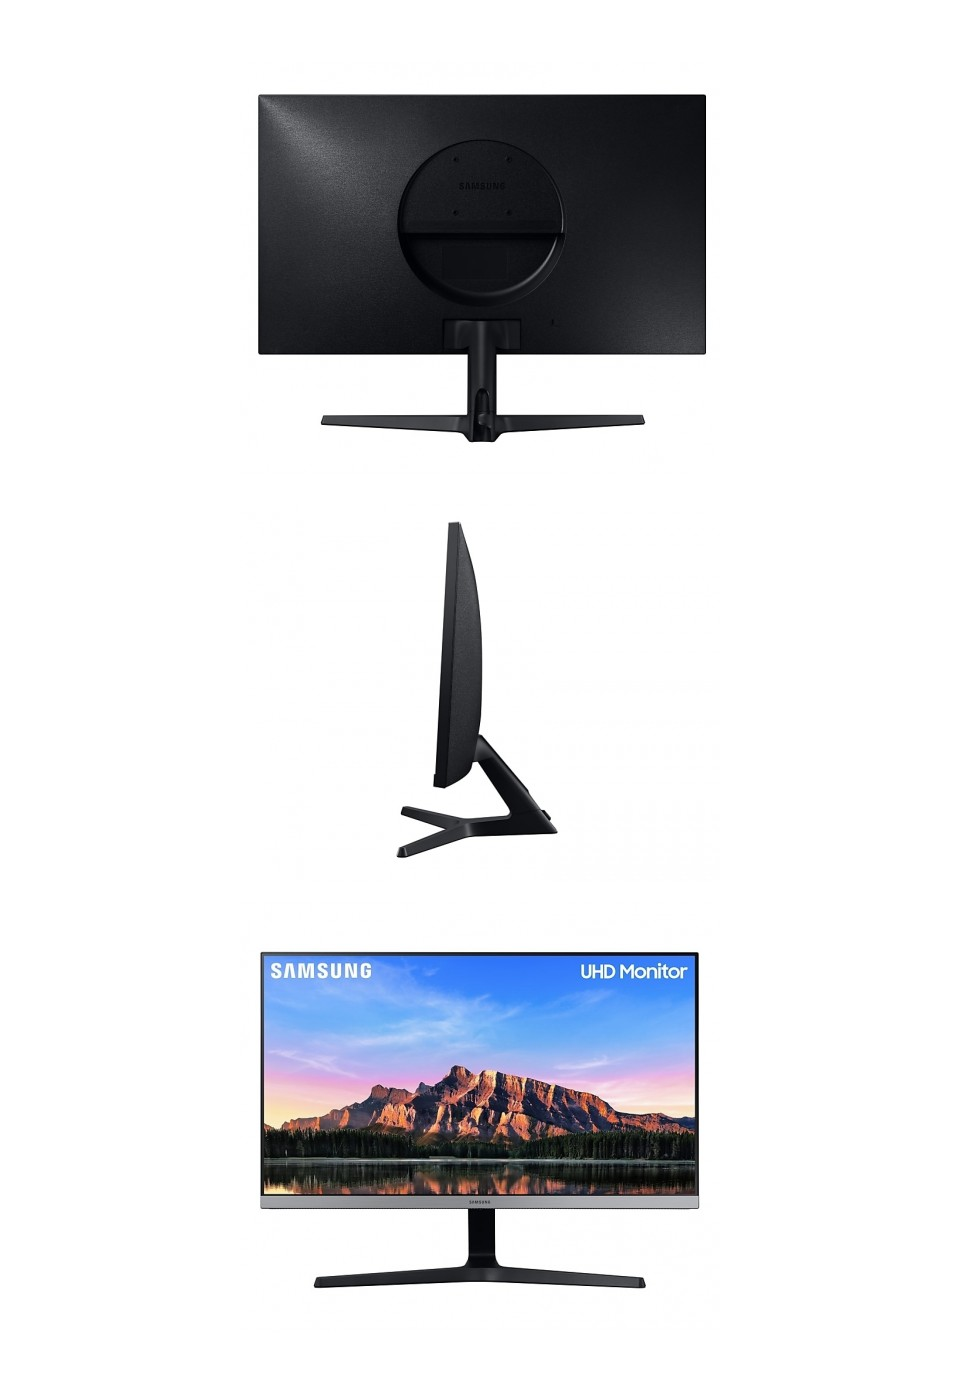 Samsung UR55 UHD 28in Monitor product